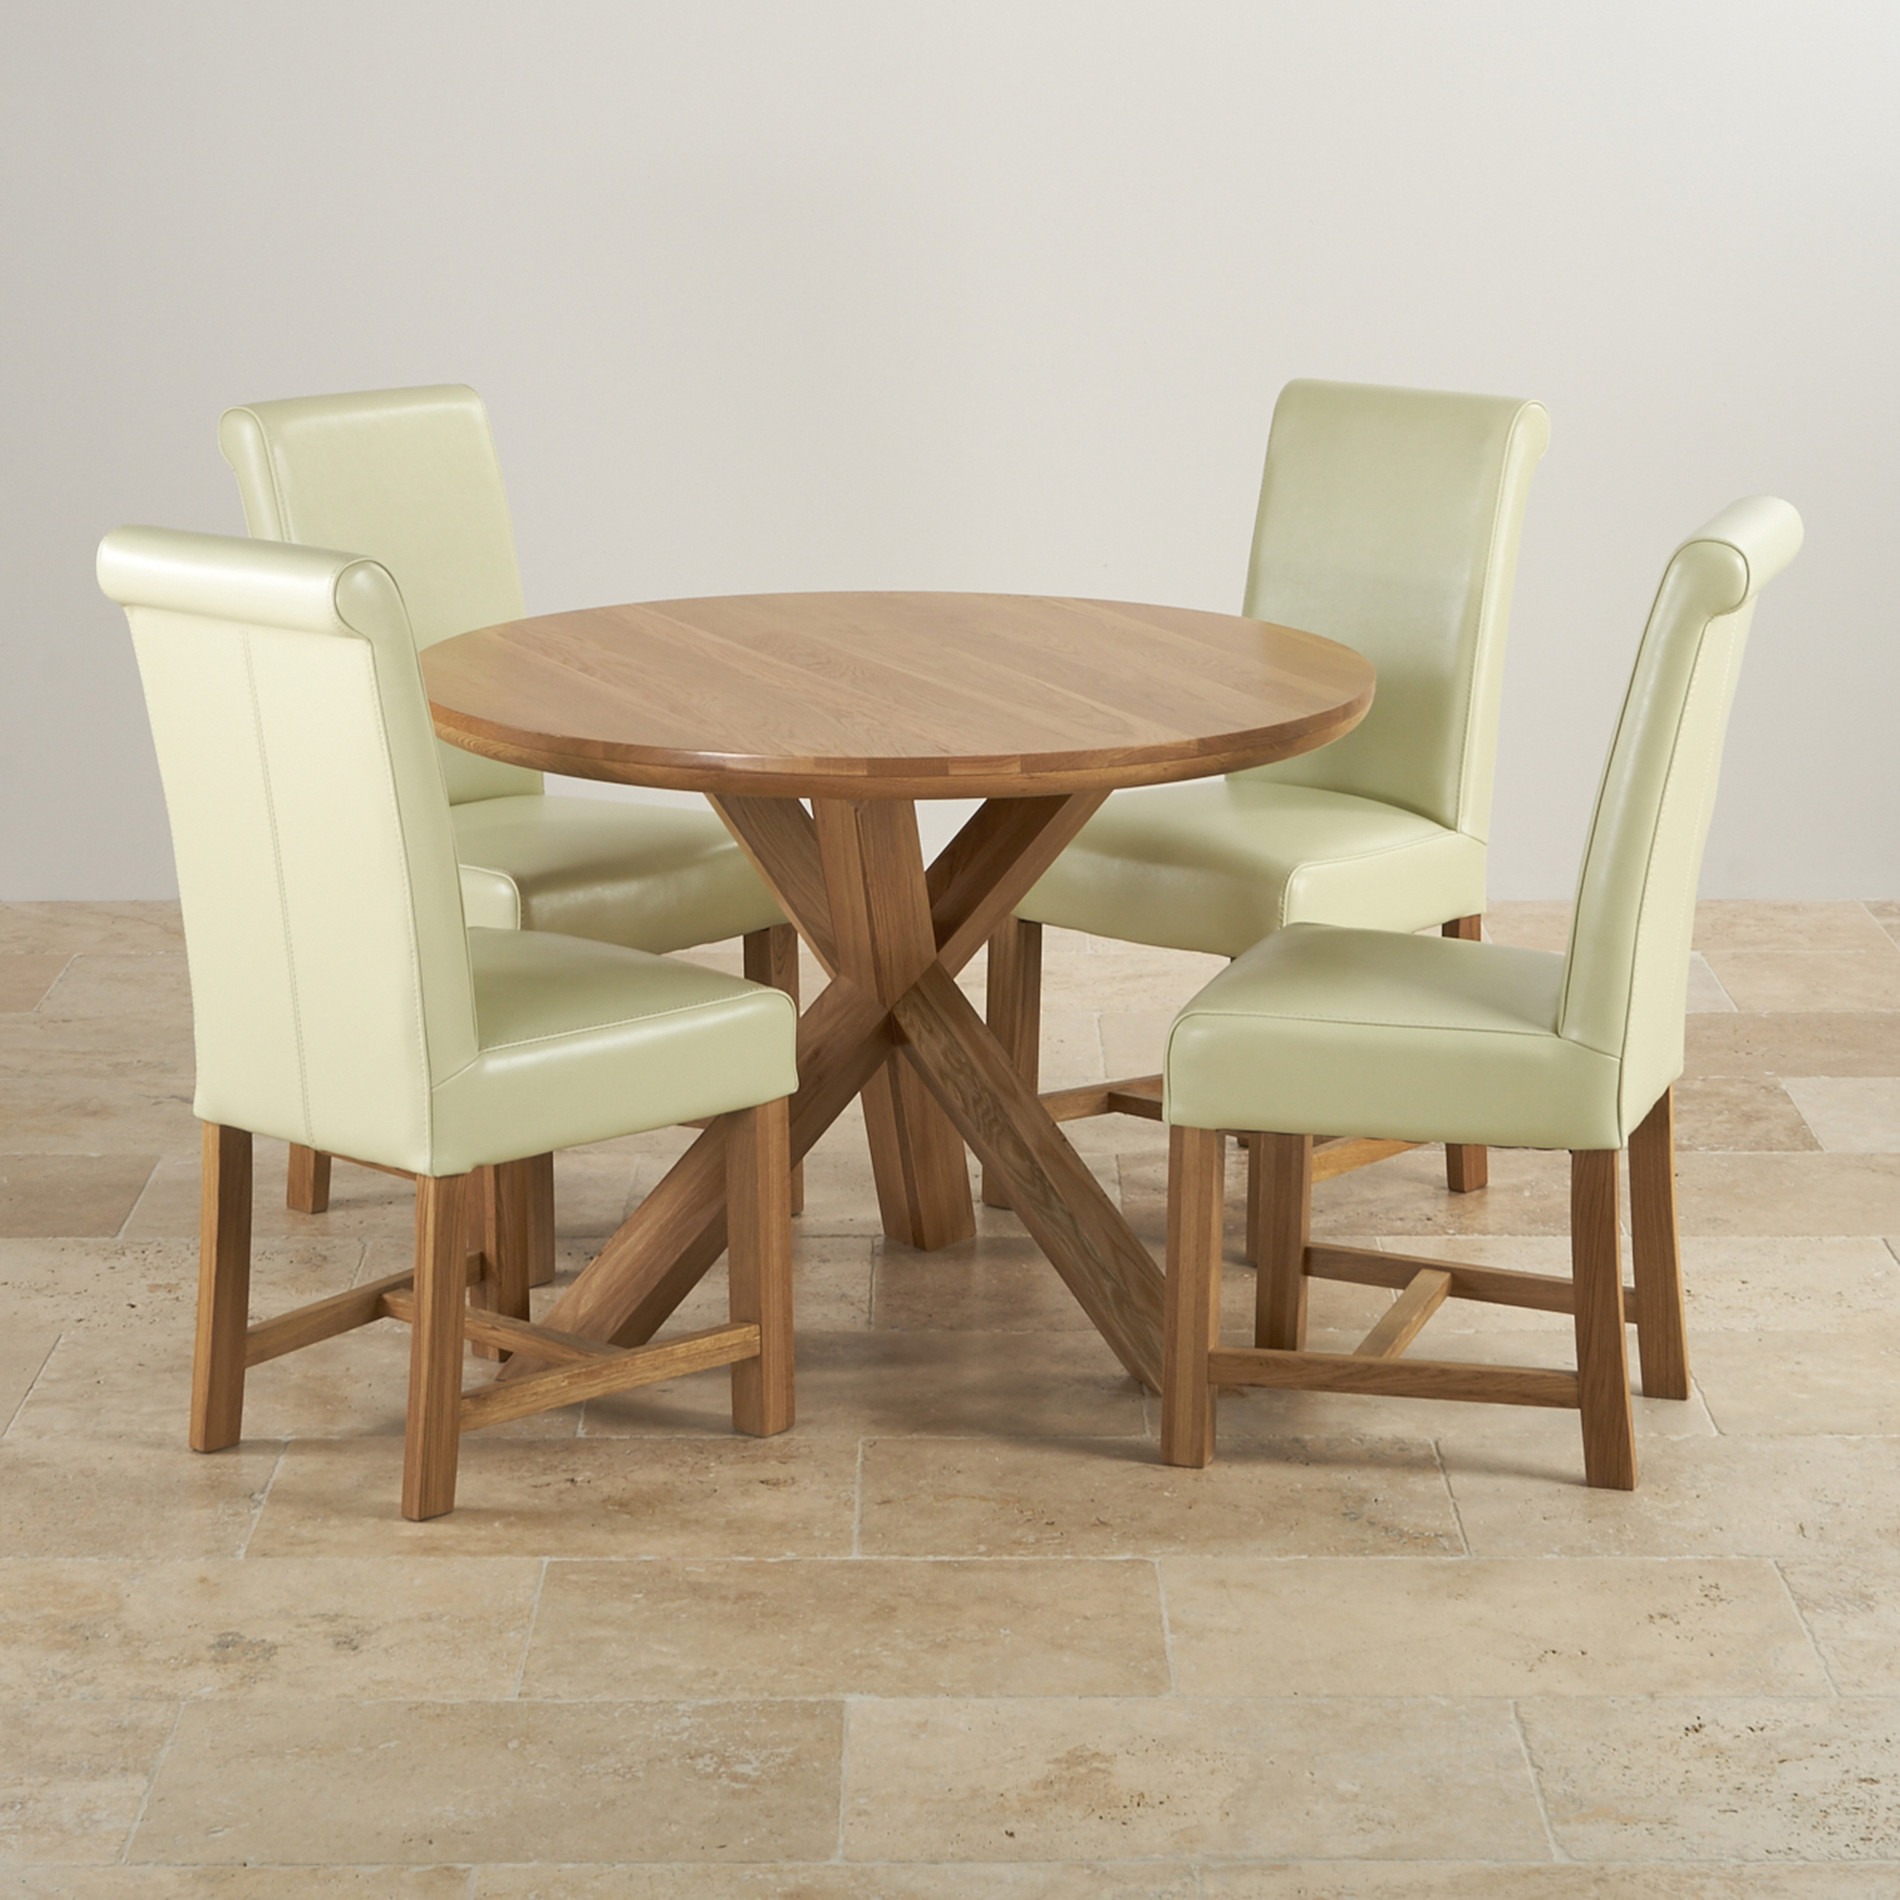 Natural Oak Round Dining Set Table 4 Cream Leather Chairs